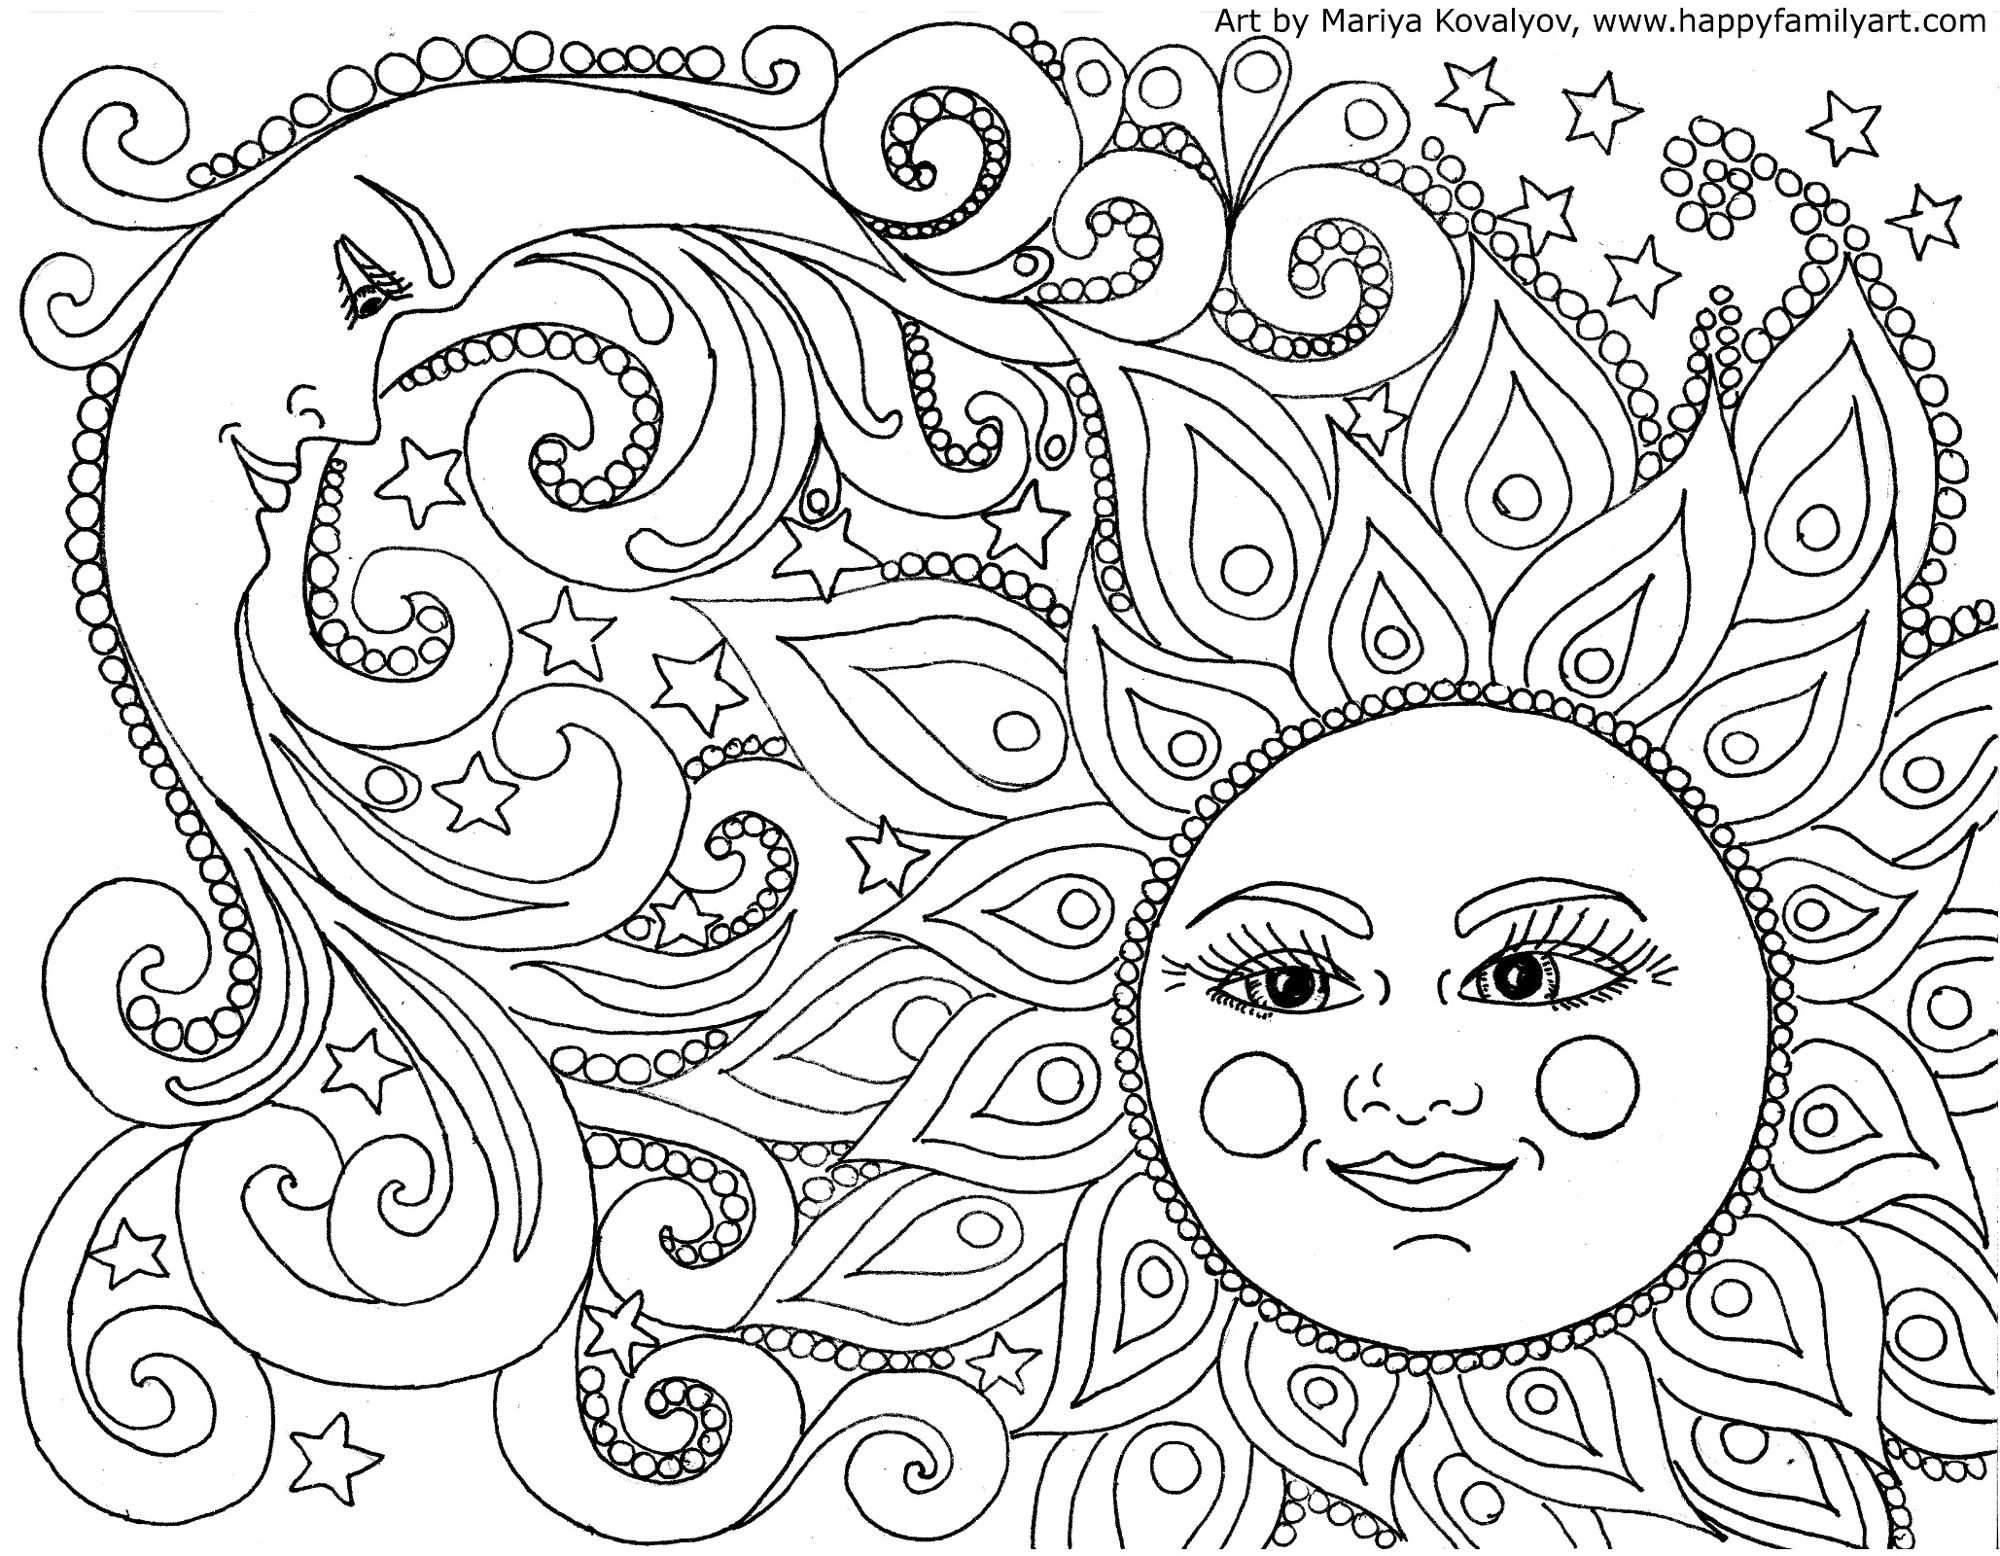 2000x1556 Fresh I Made Many Great Fun And Original Coloring Pages Color Your